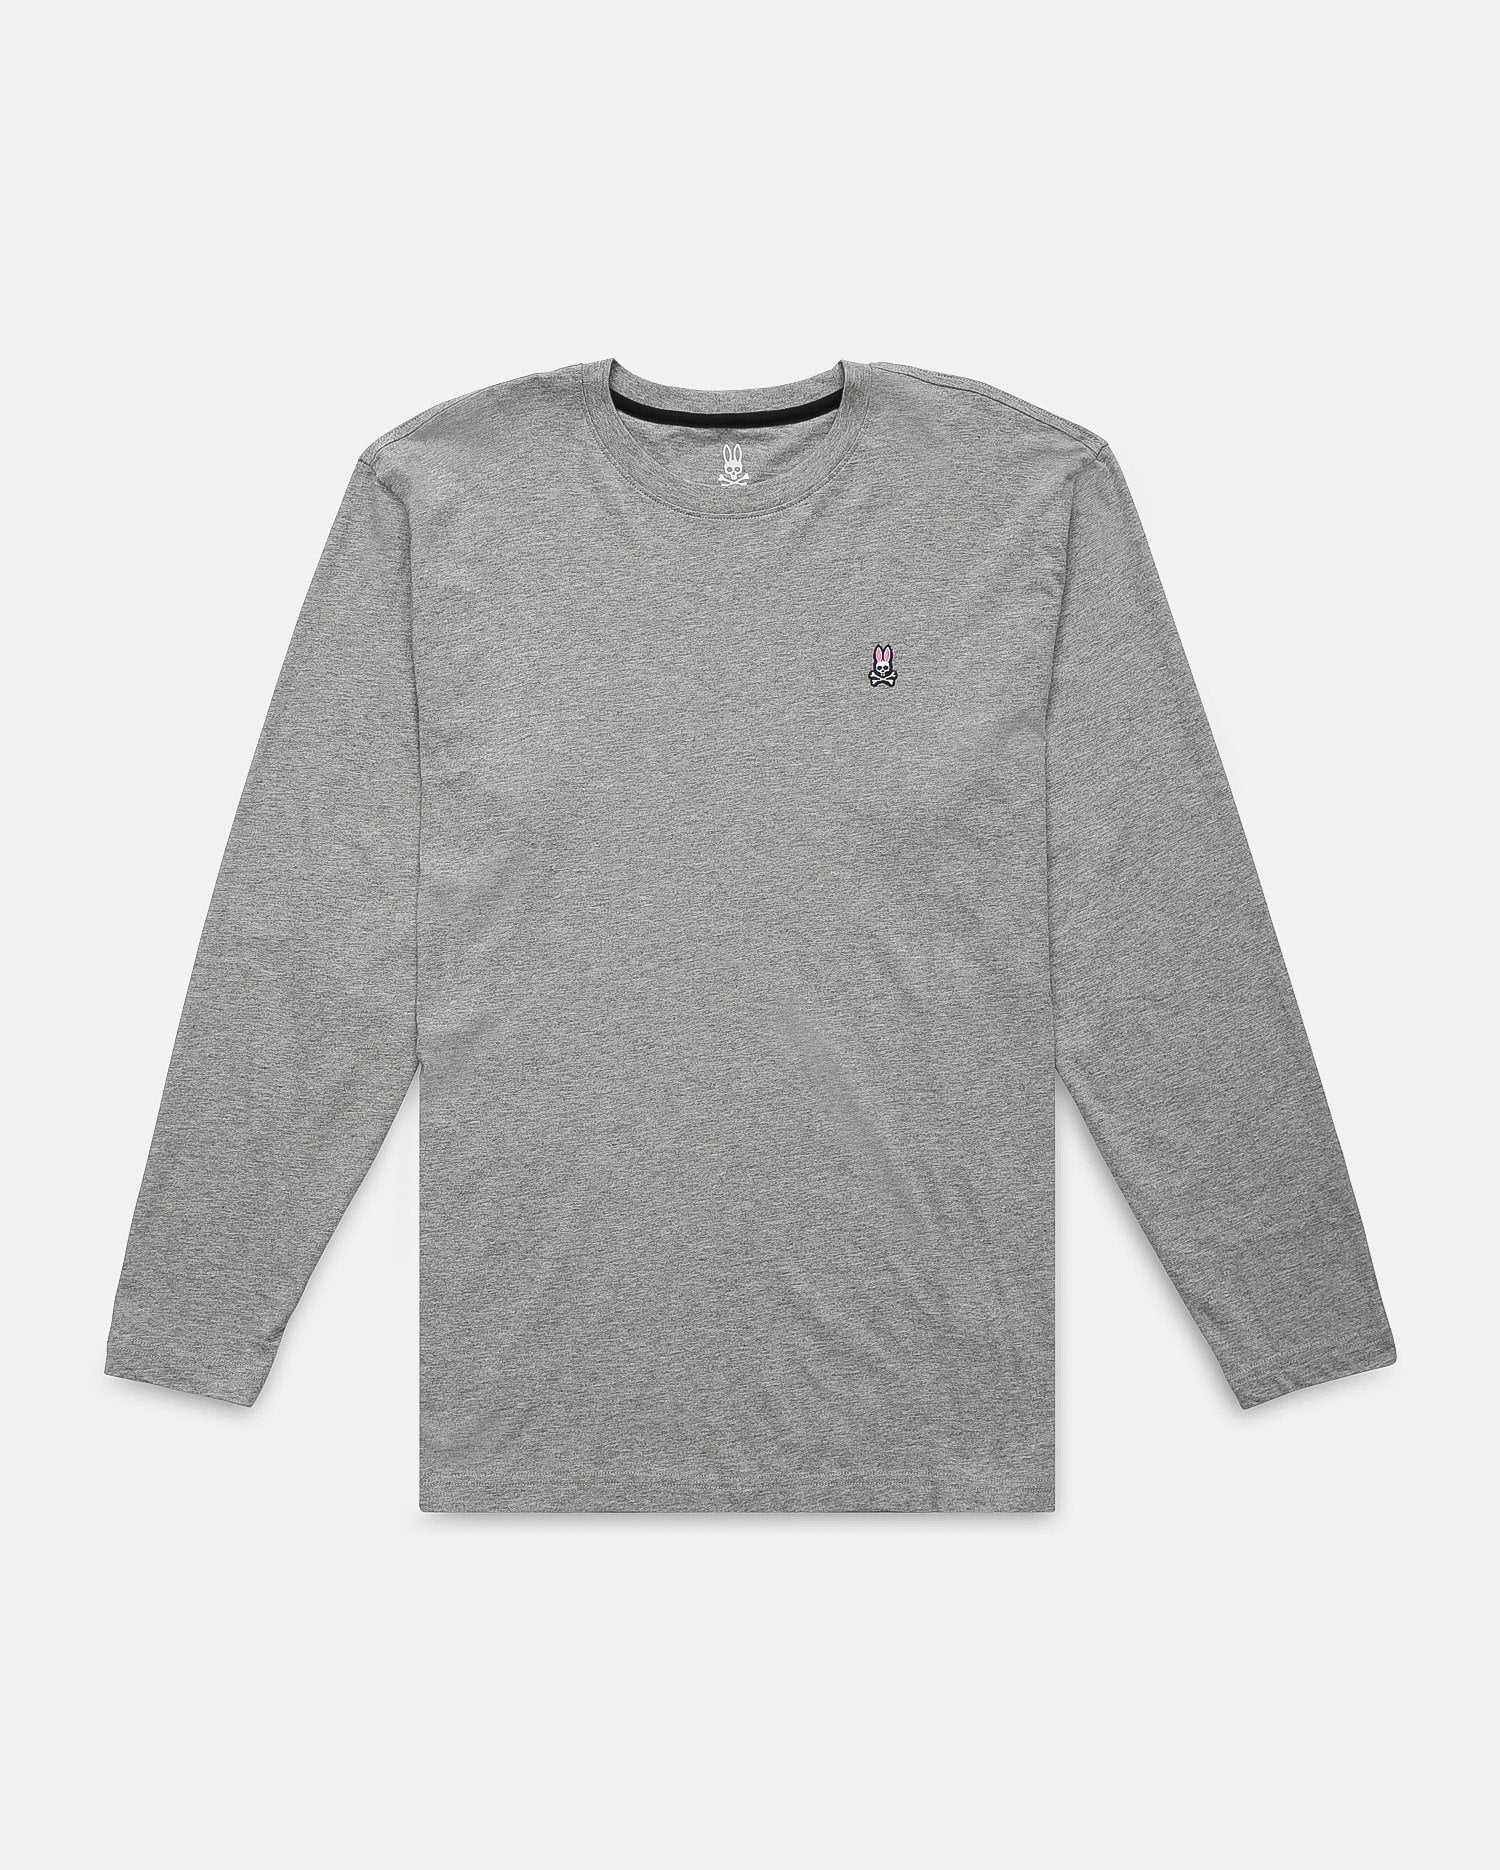 MENS L/S T-SHIRT - B6T422ARPC - HEATHER GREY (HGY)